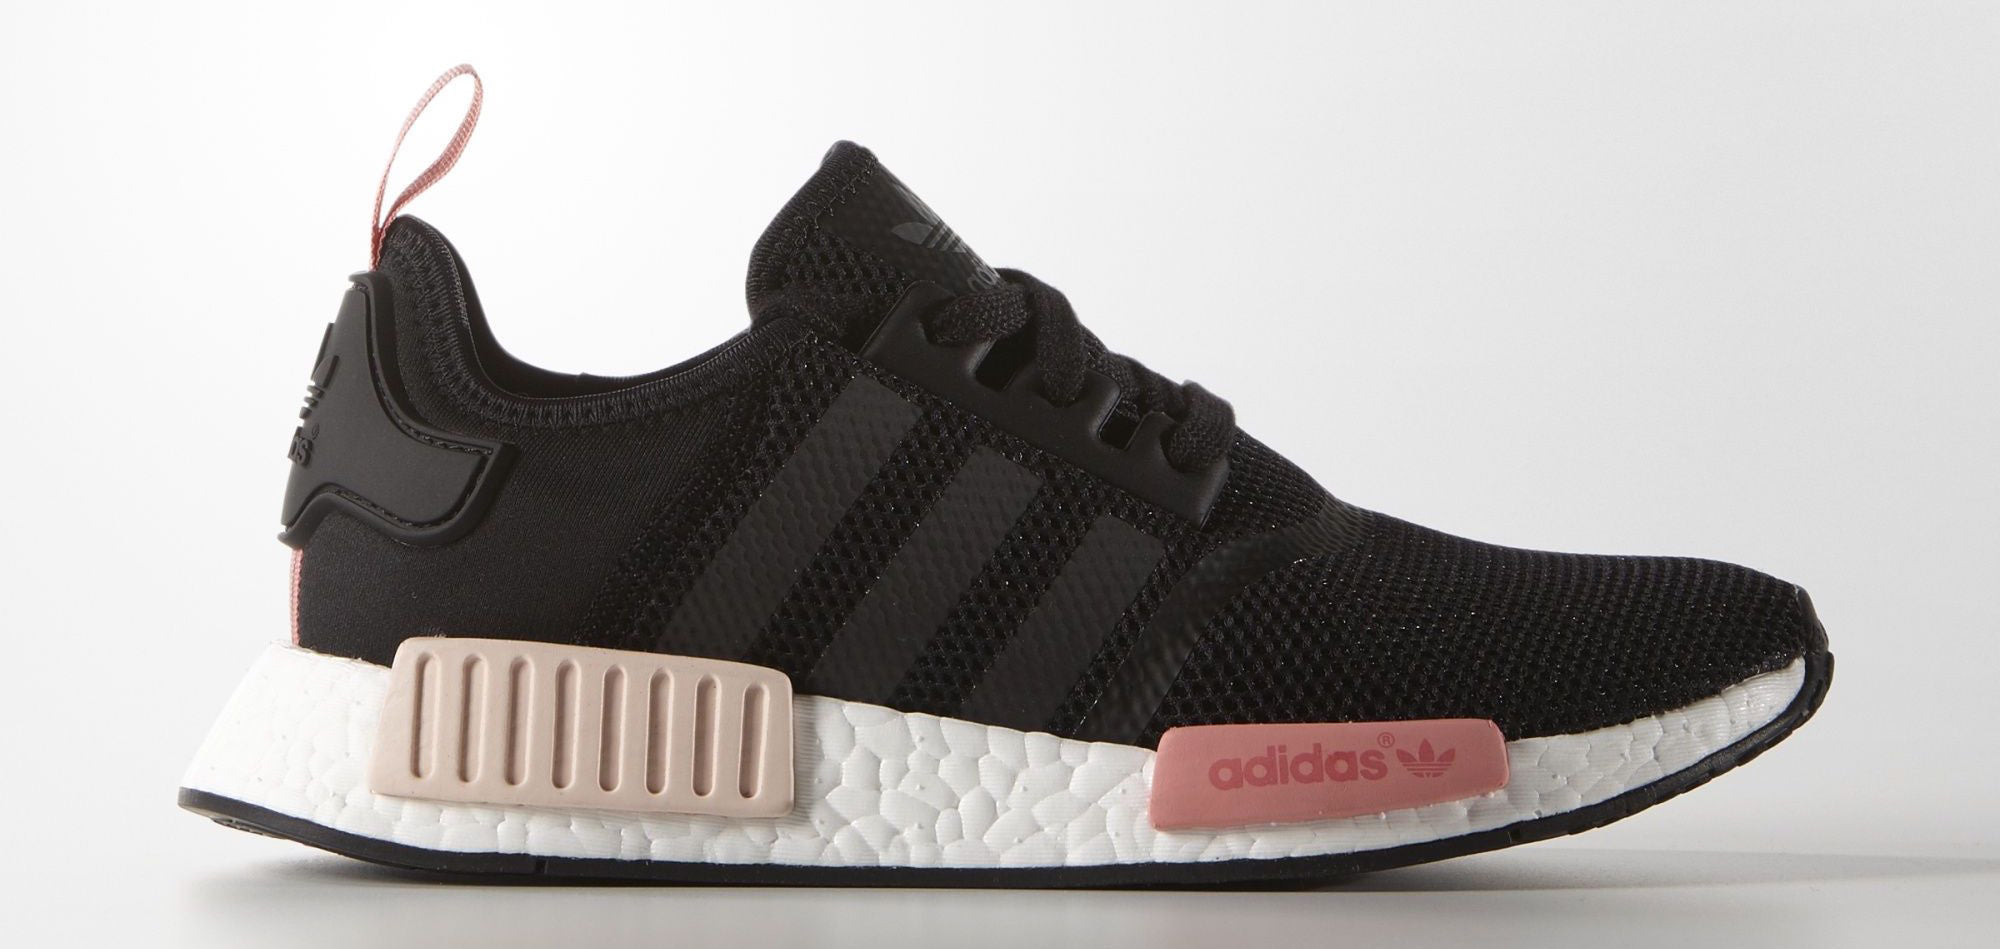 Adidas Originals NMD R1 - Peach Pink